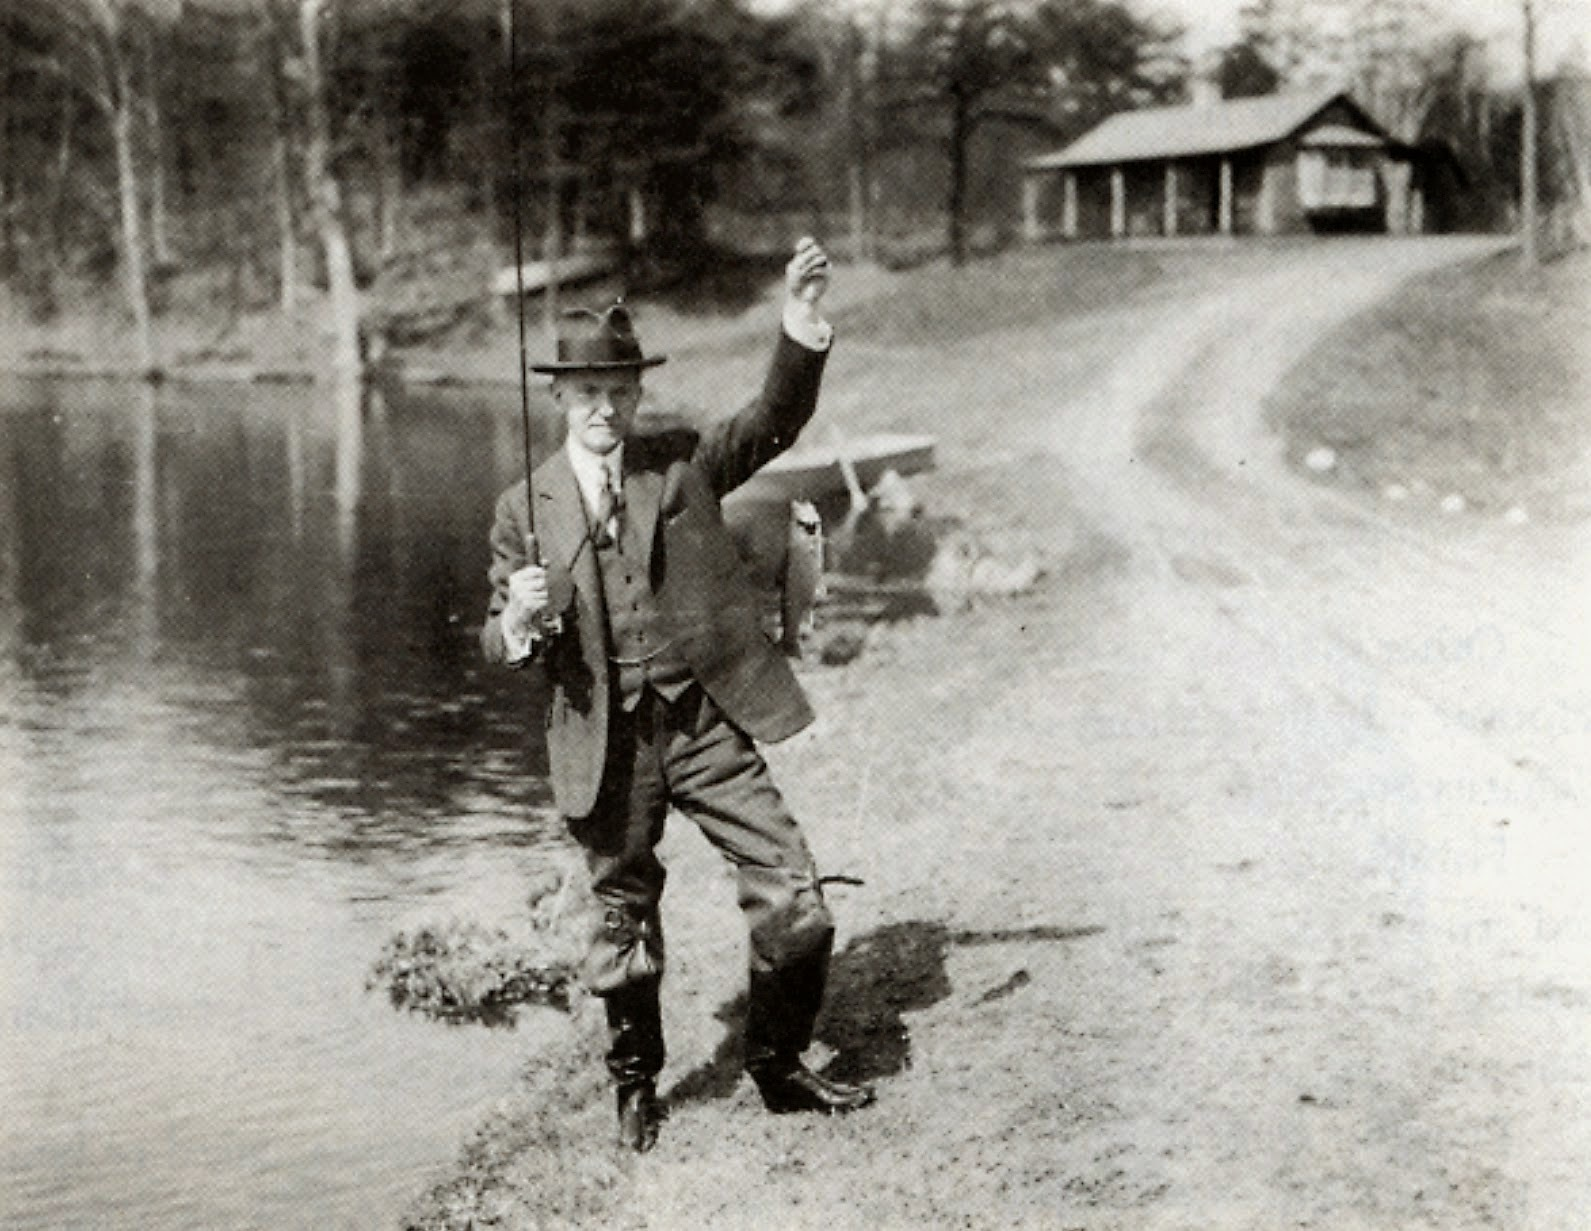 coolidge-fishing.jpg.a5beeb9e1f3328e11e8152d339fd33ab.jpg